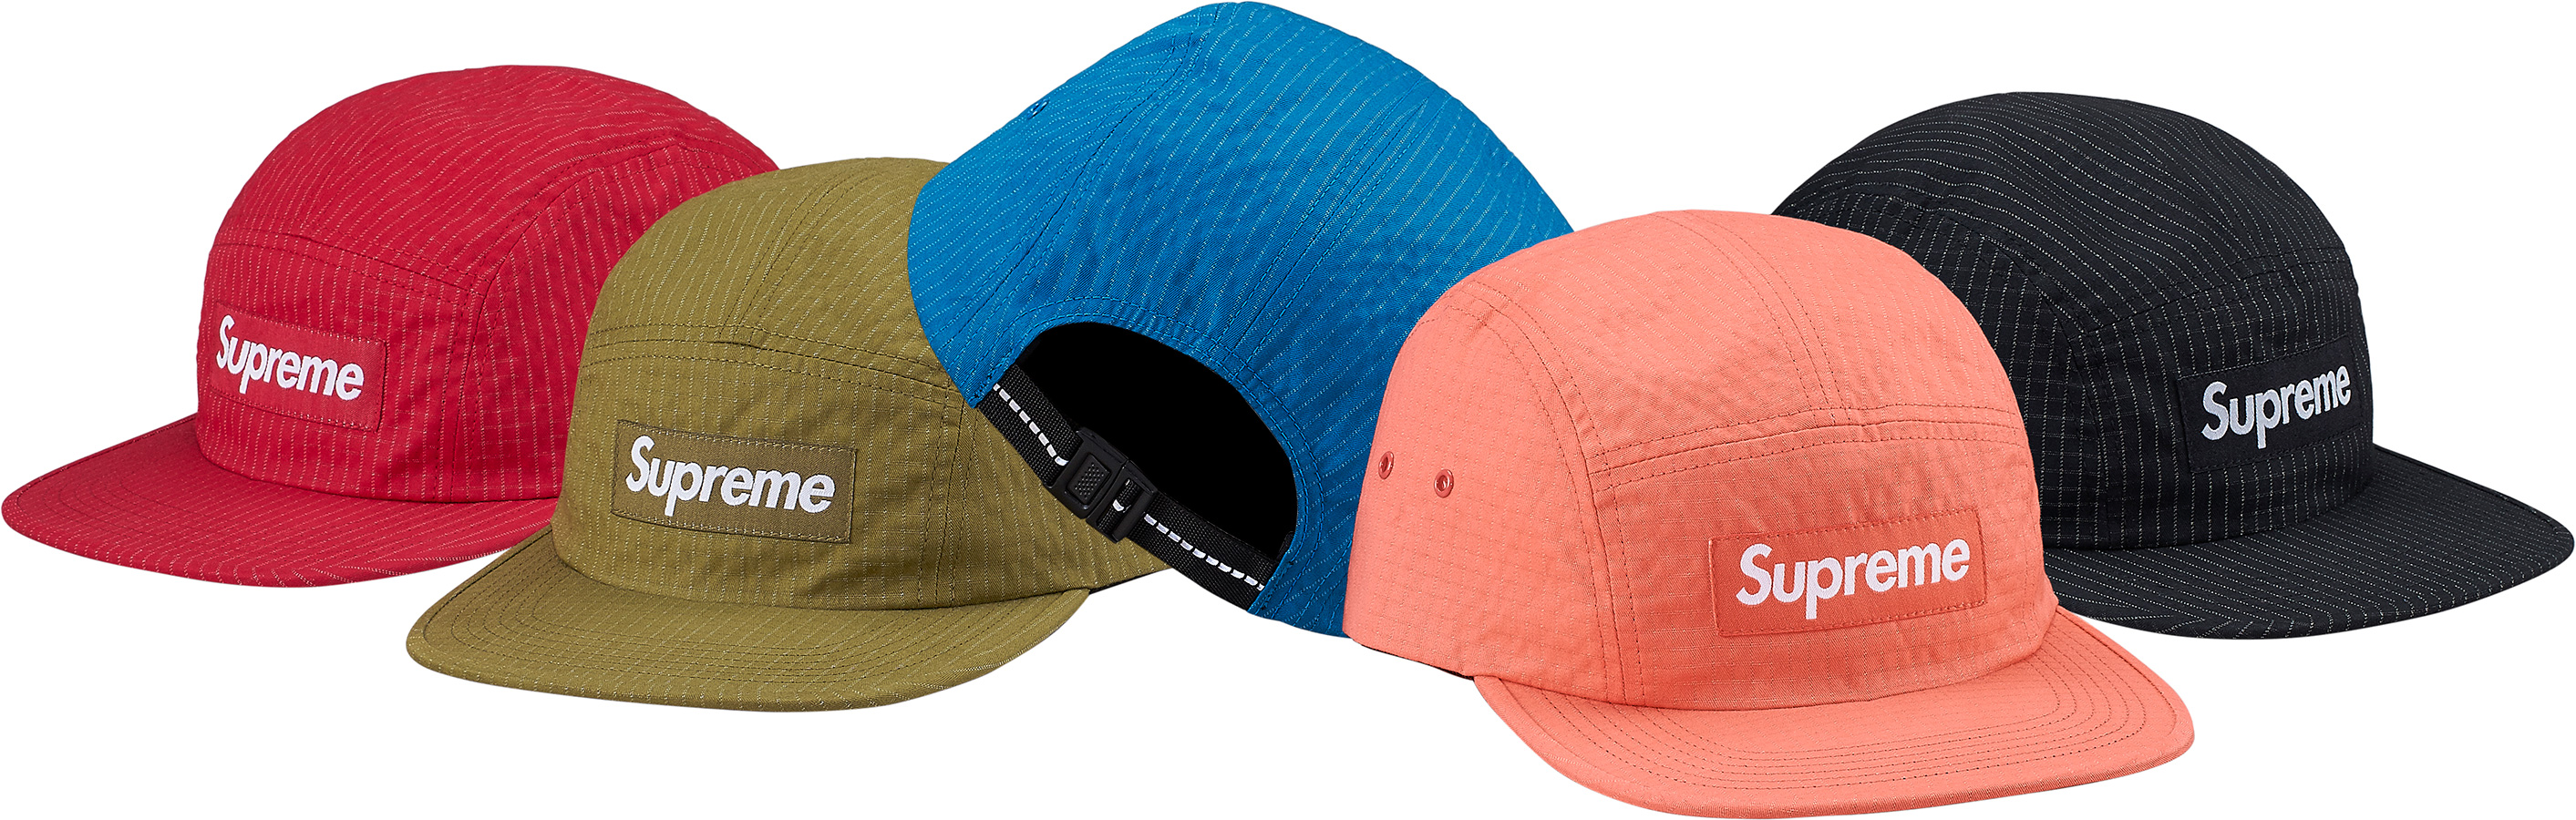 9996f61c257 ... 50% off supreme overdyed ripstop camp cap 2d9ab 96e2c